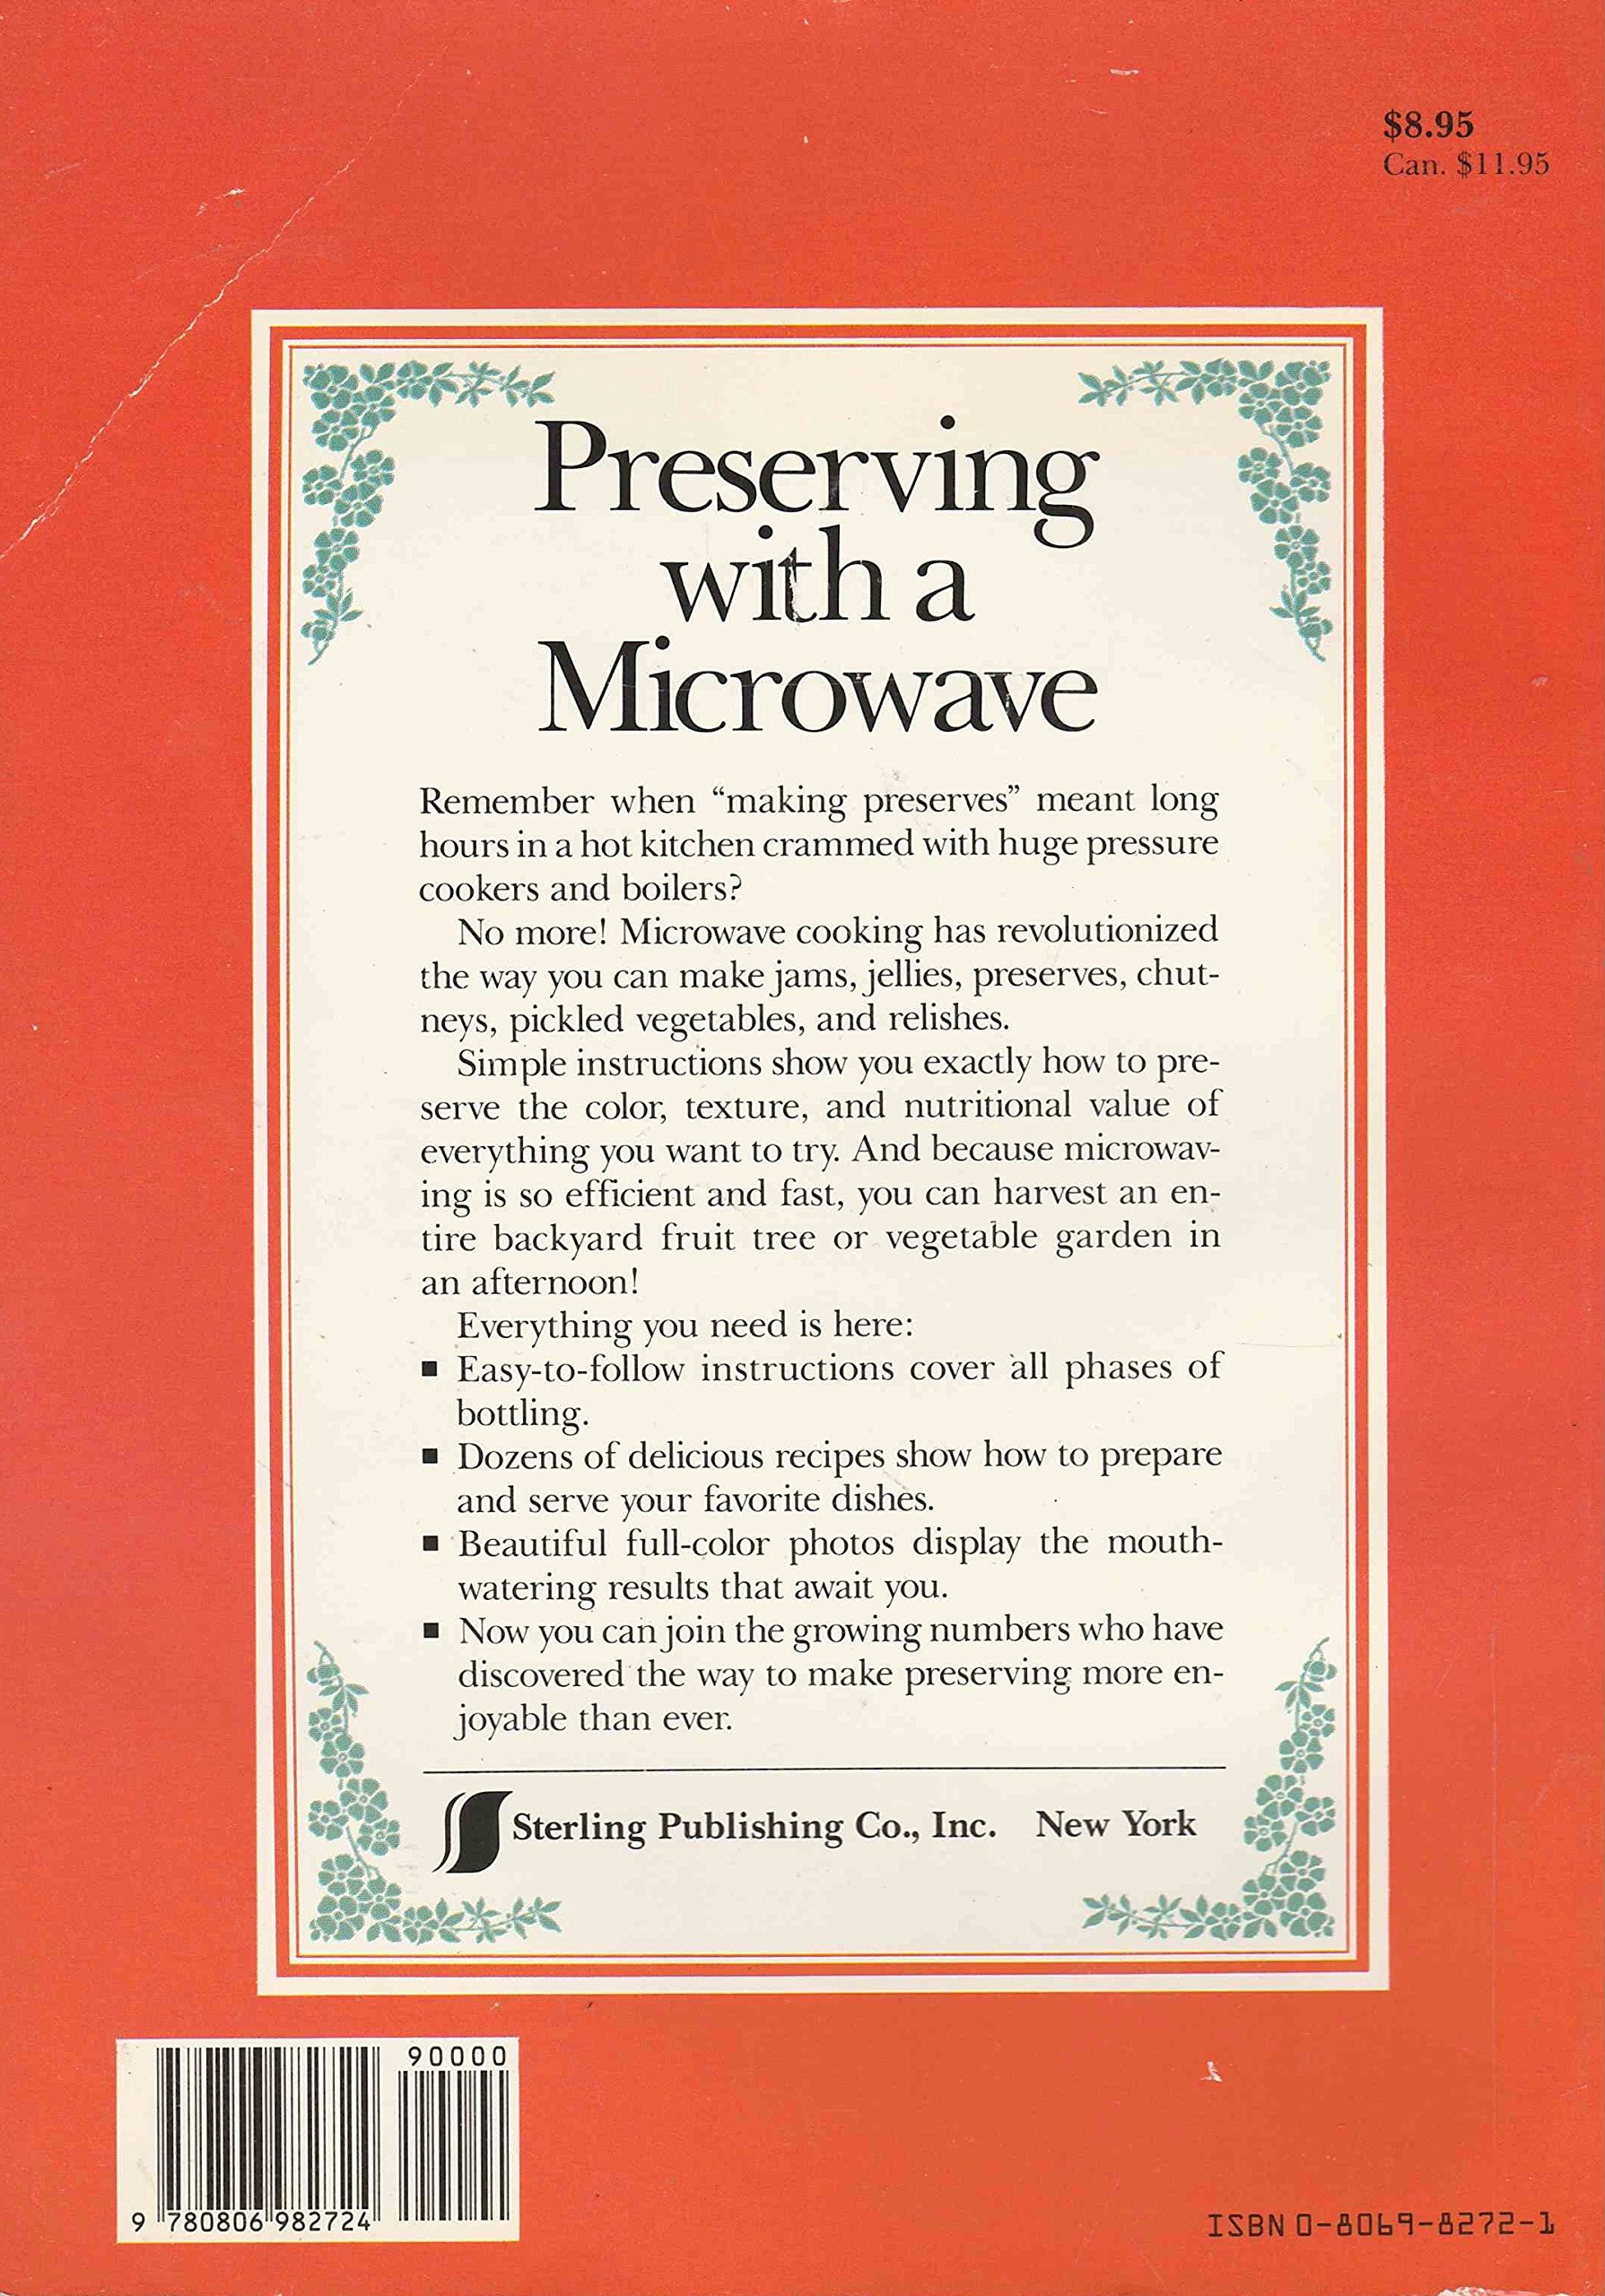 gourmet guide to instant preserving jams and pickles in the microwave